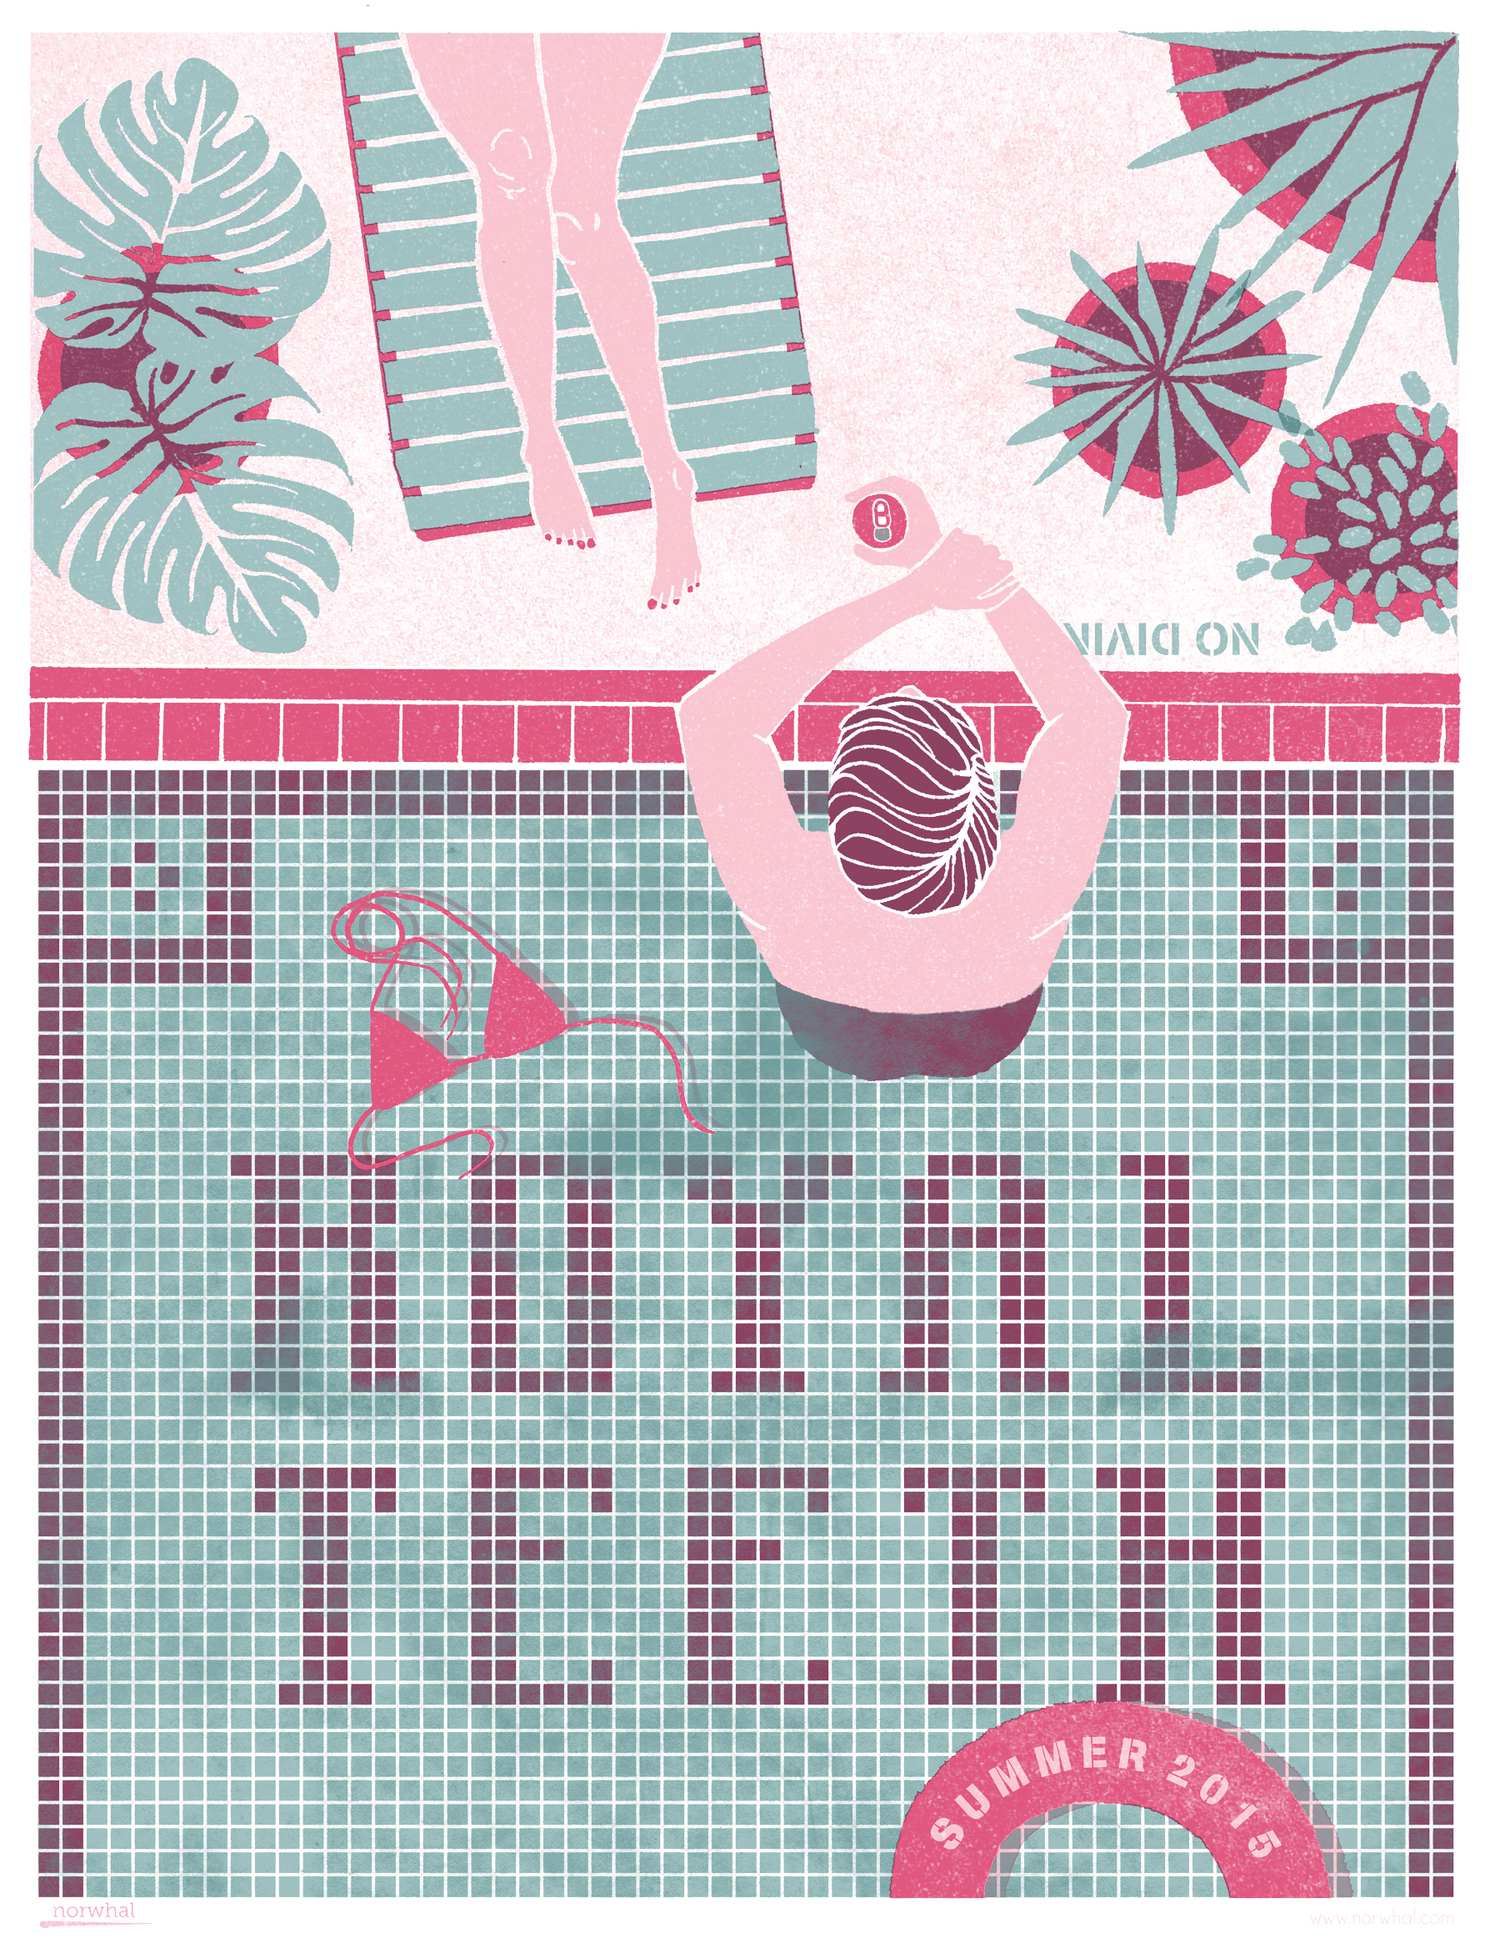 Royal Teeth Screen Print by Nora Patterson (image courtesy of the artist)